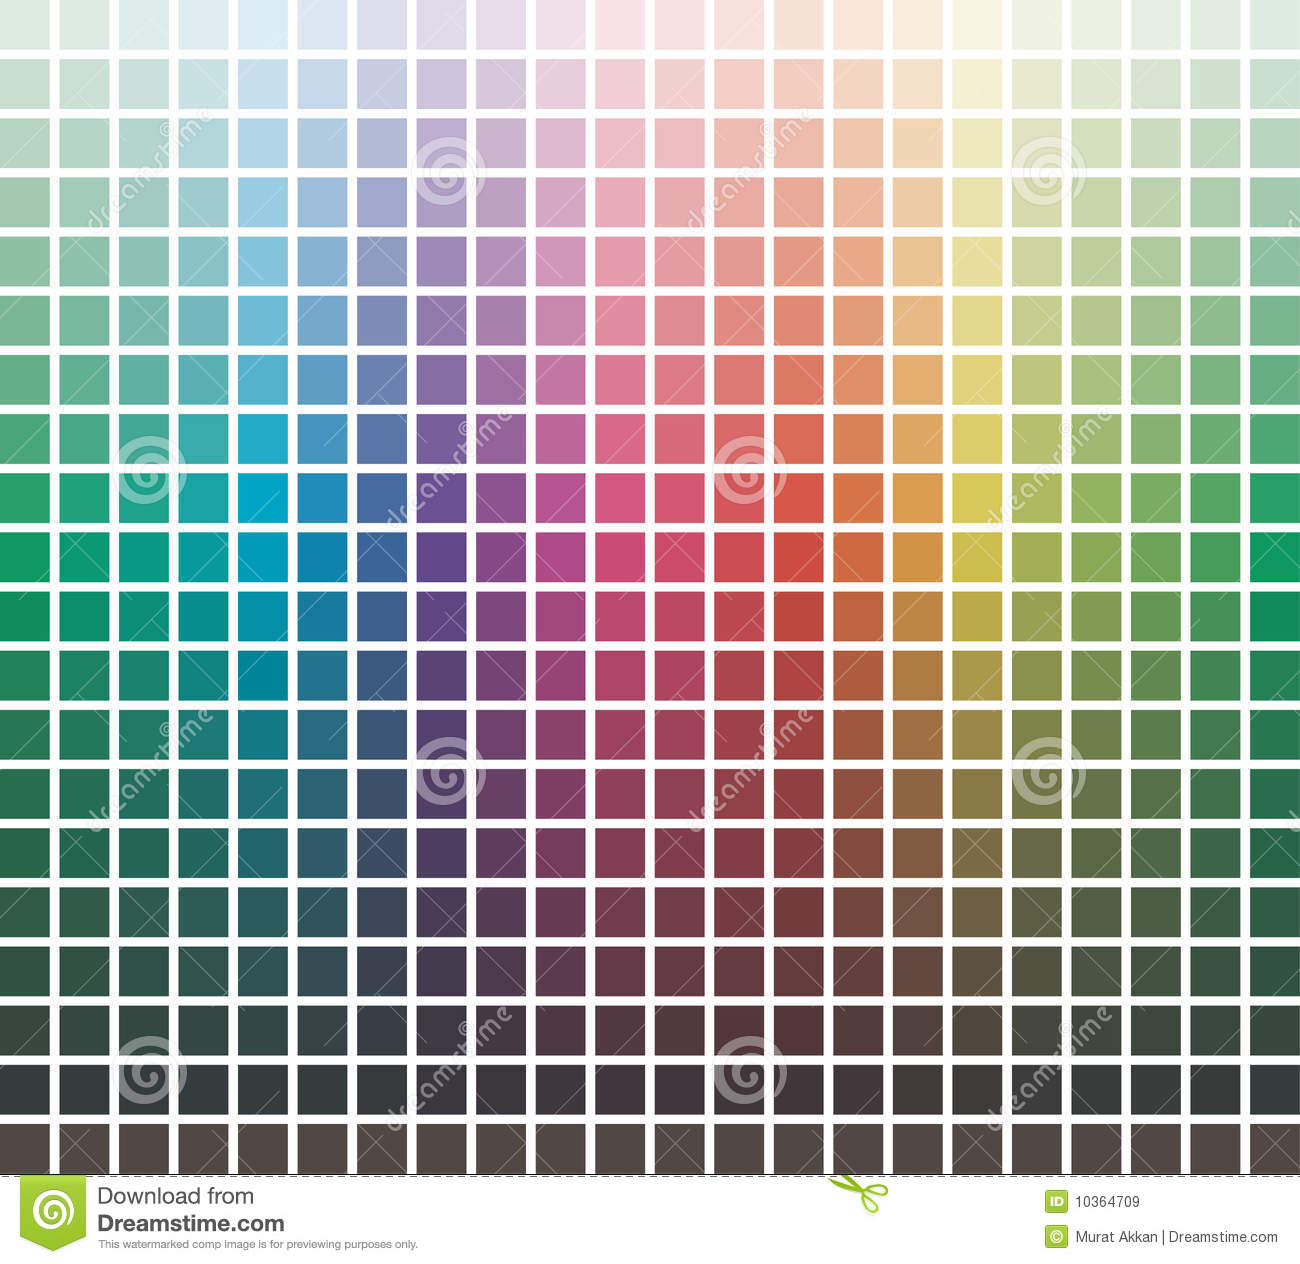 Vector colors library